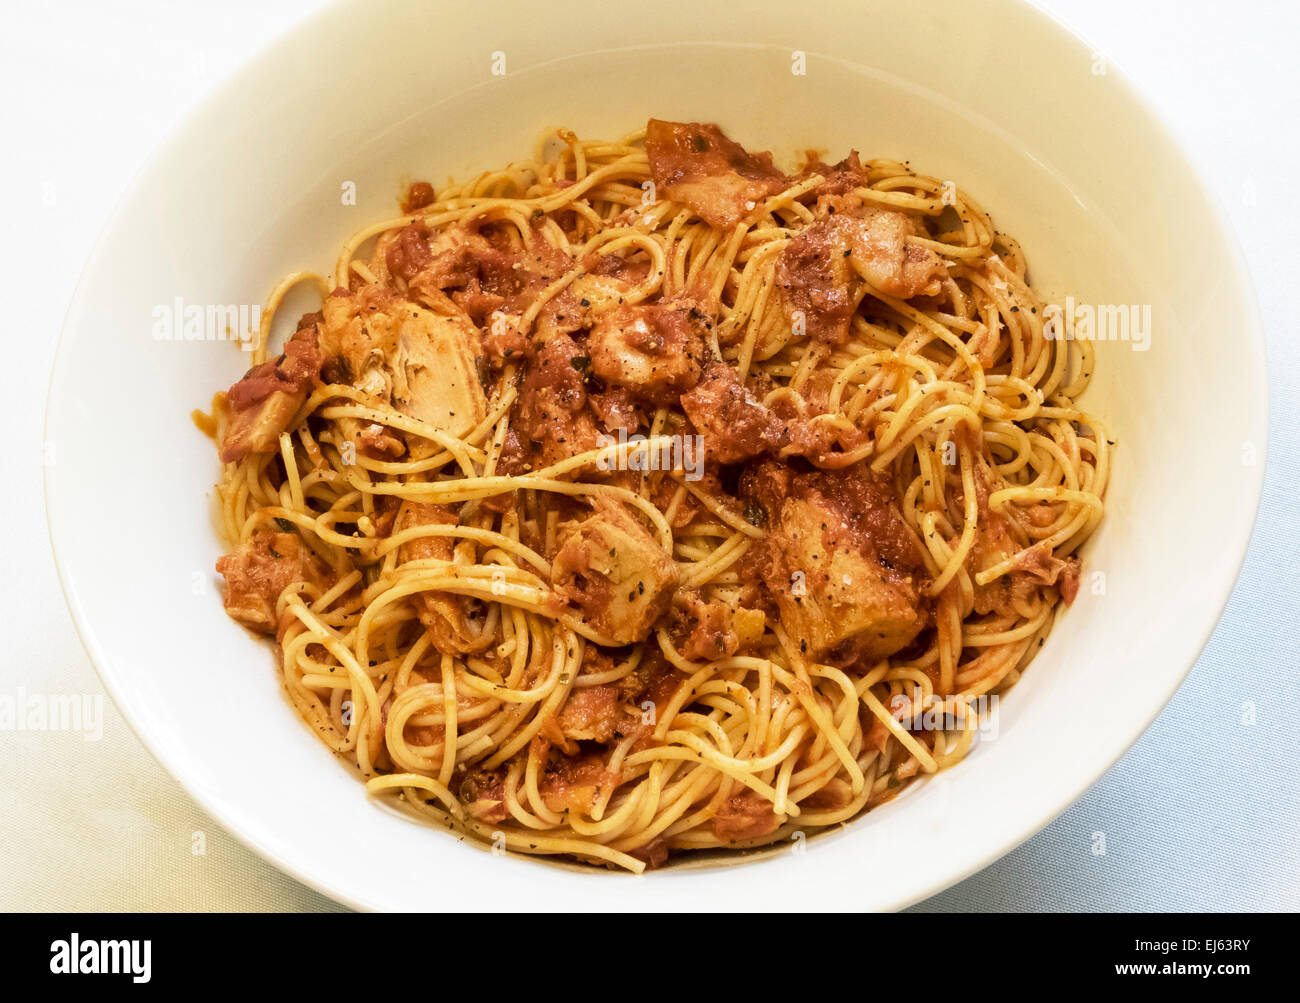 Spaghetti with tuna and bacon and tomato sauce - Stock Image